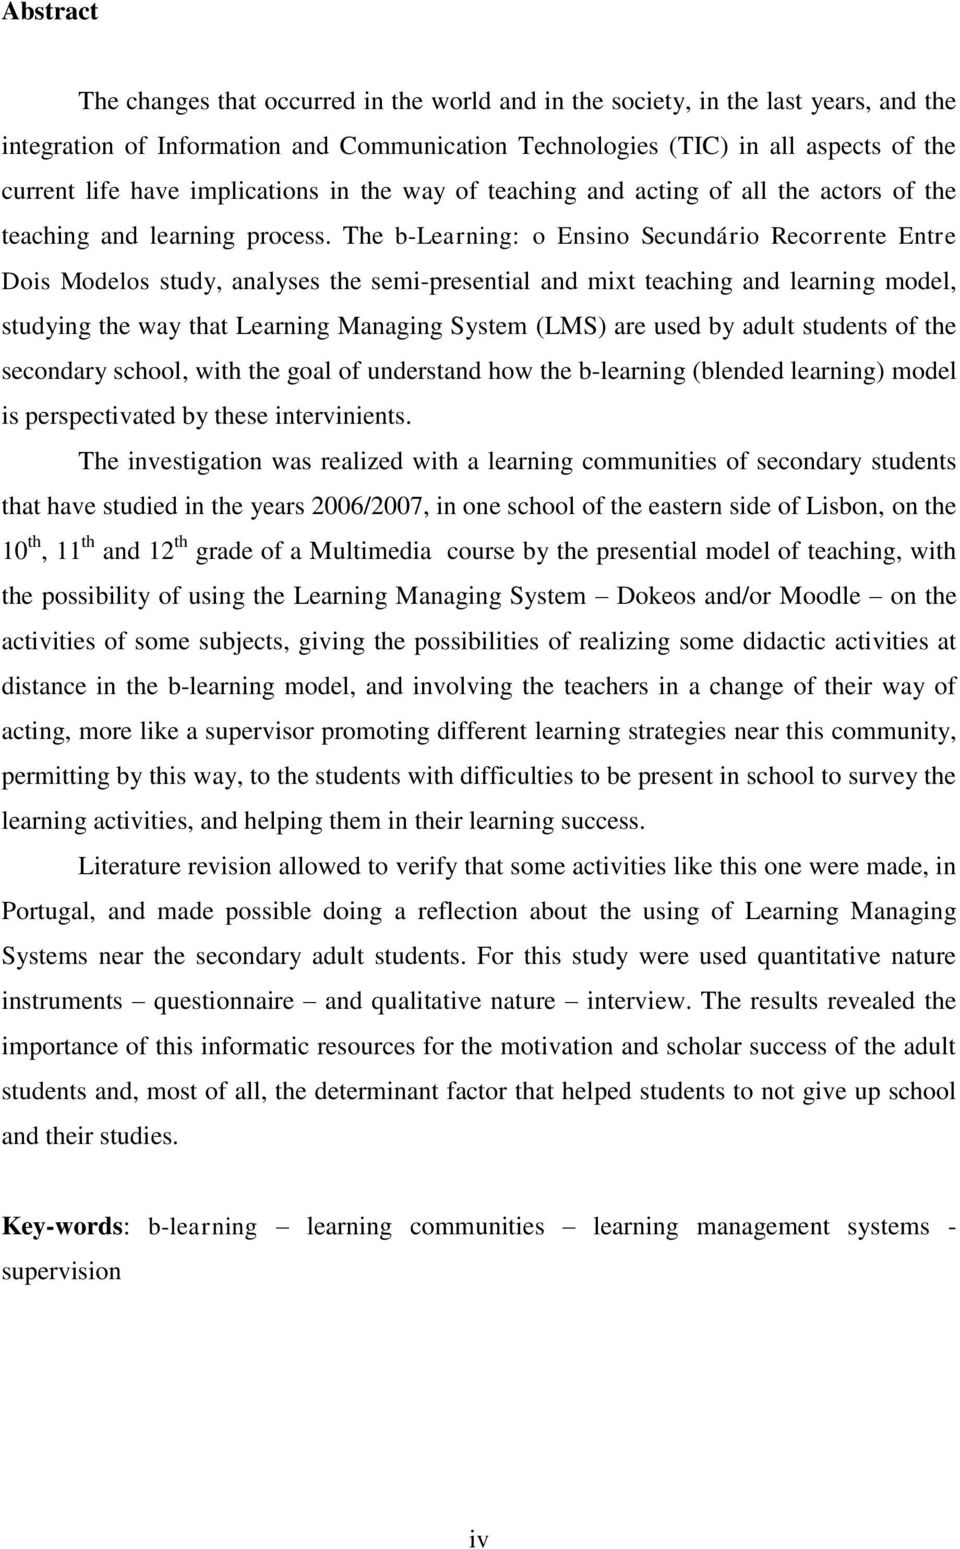 The b-learning: o Ensino Secundário Recorrente Entre Dois Modelos study, analyses the semi-presential and mixt teaching and learning model, studying the way that Learning Managing System (LMS) are